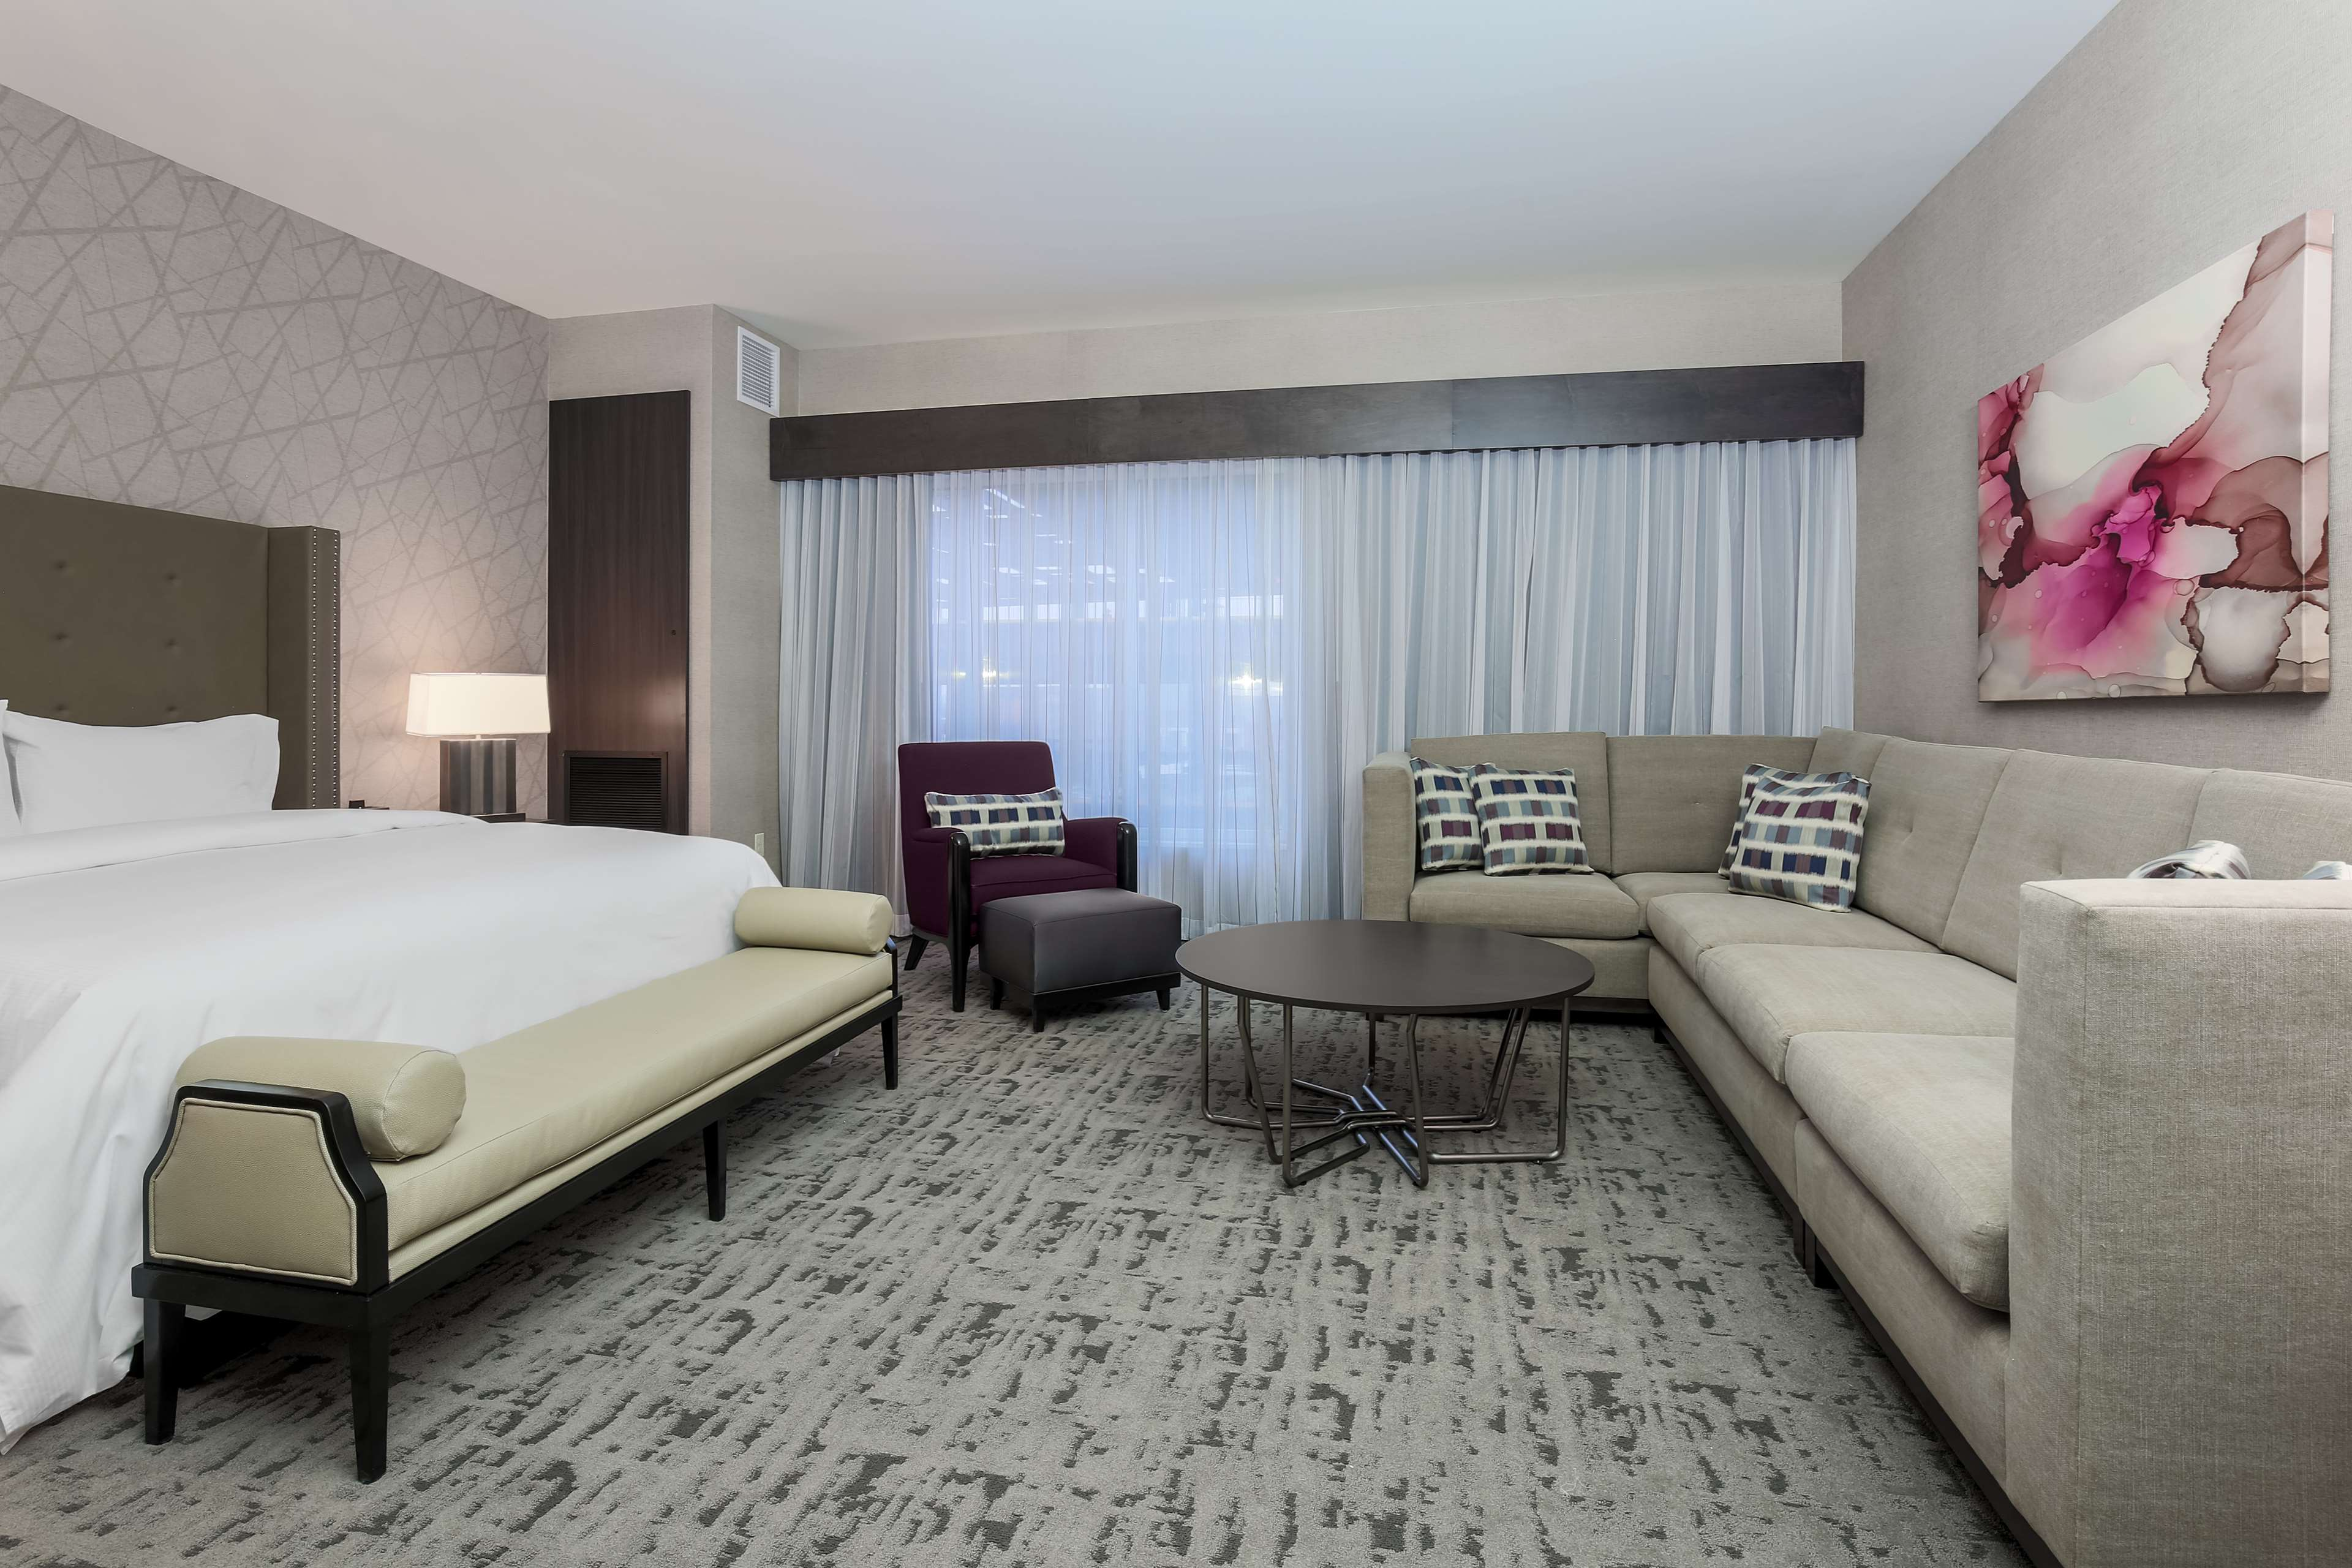 DoubleTree by Hilton Evansville image 31